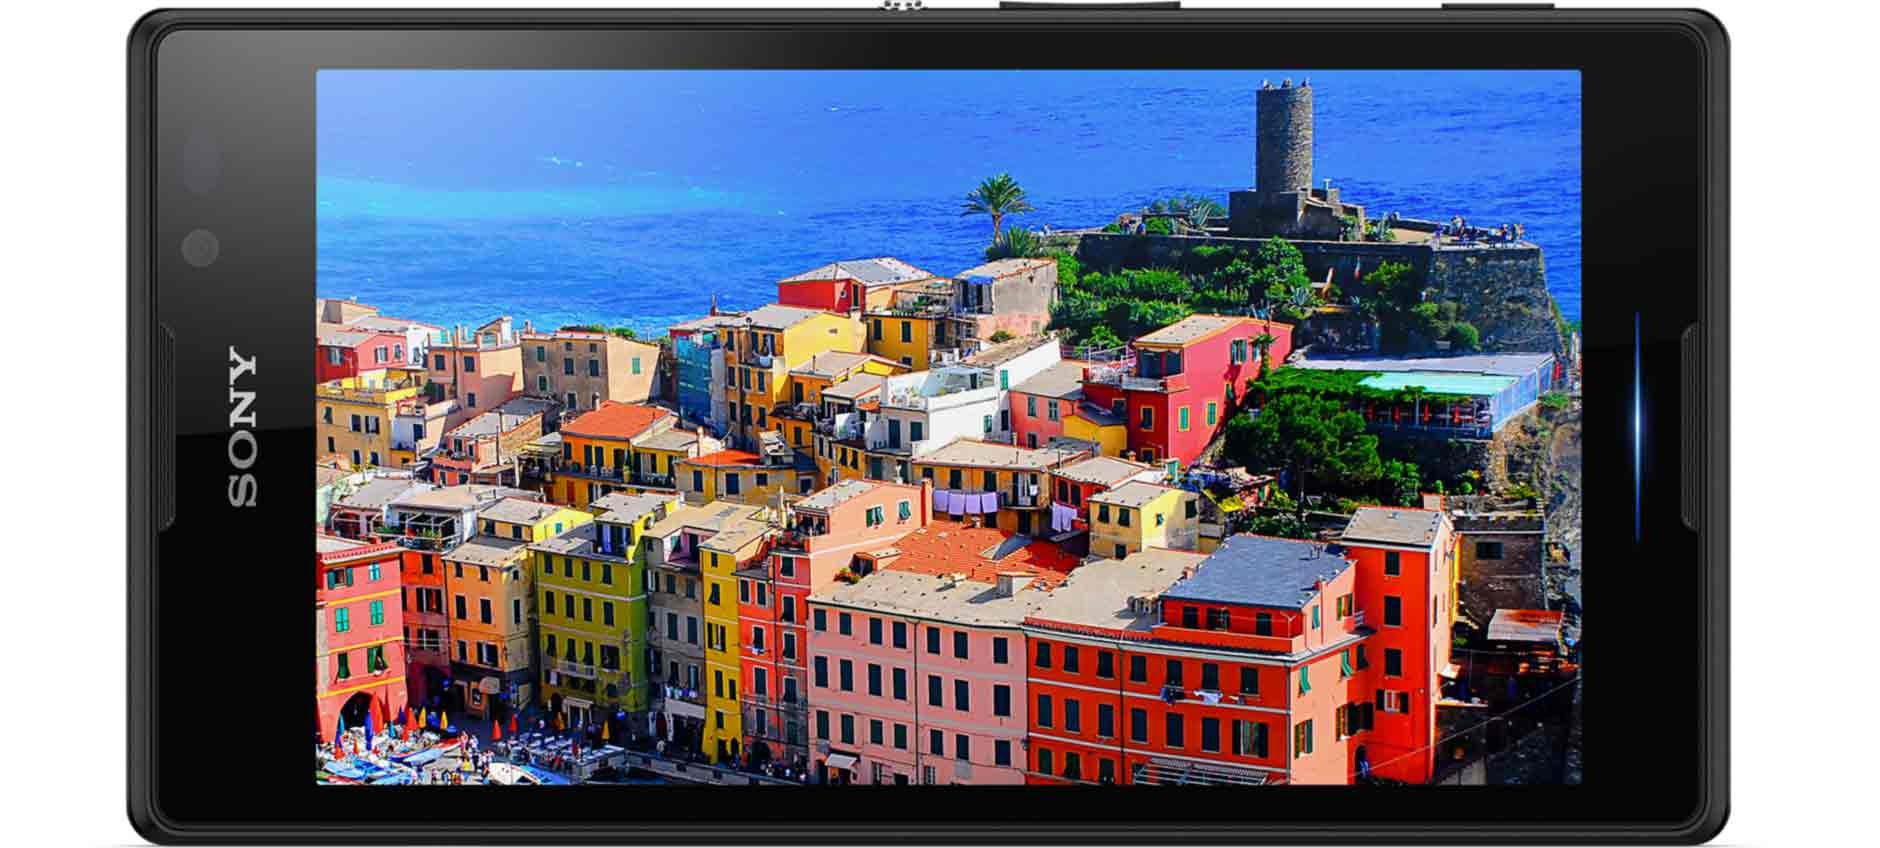 xperia-c-features-display-amazing-viewing-experience-1880x940-705e68db32d5f6bb08d7509f3d507484.jpg